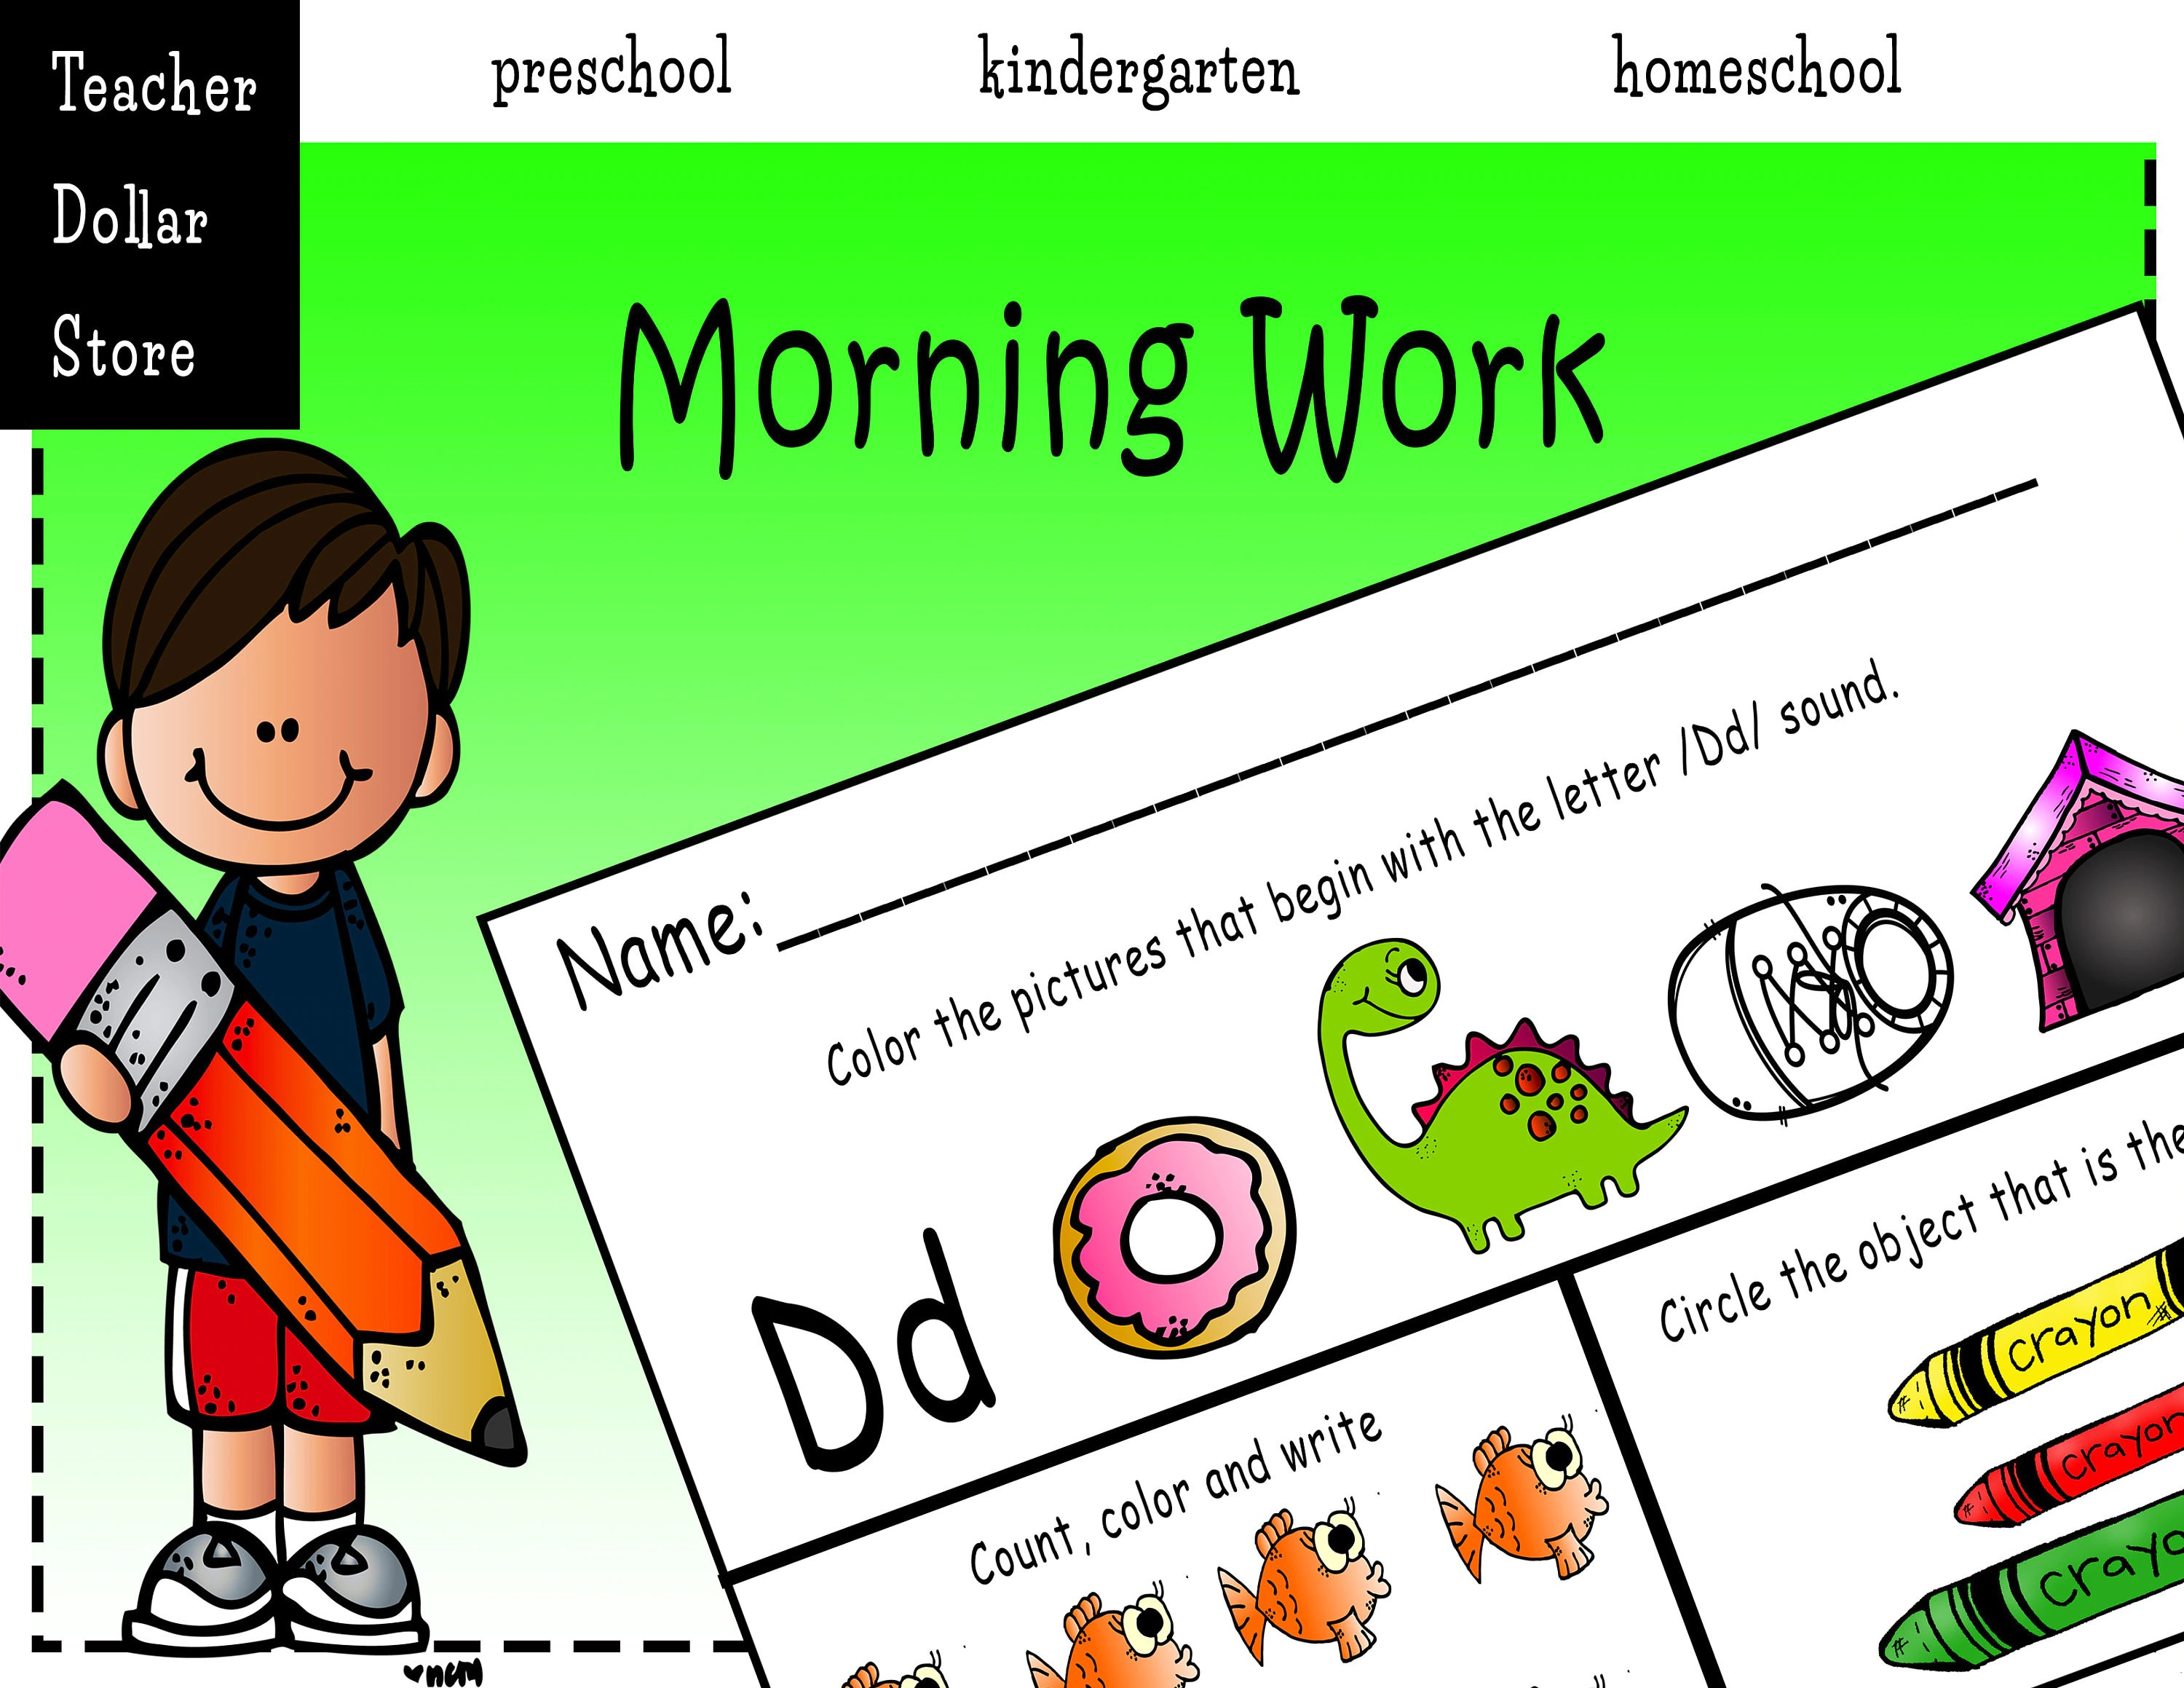 Worksheets Morning Work For Preschool Kindergarten And